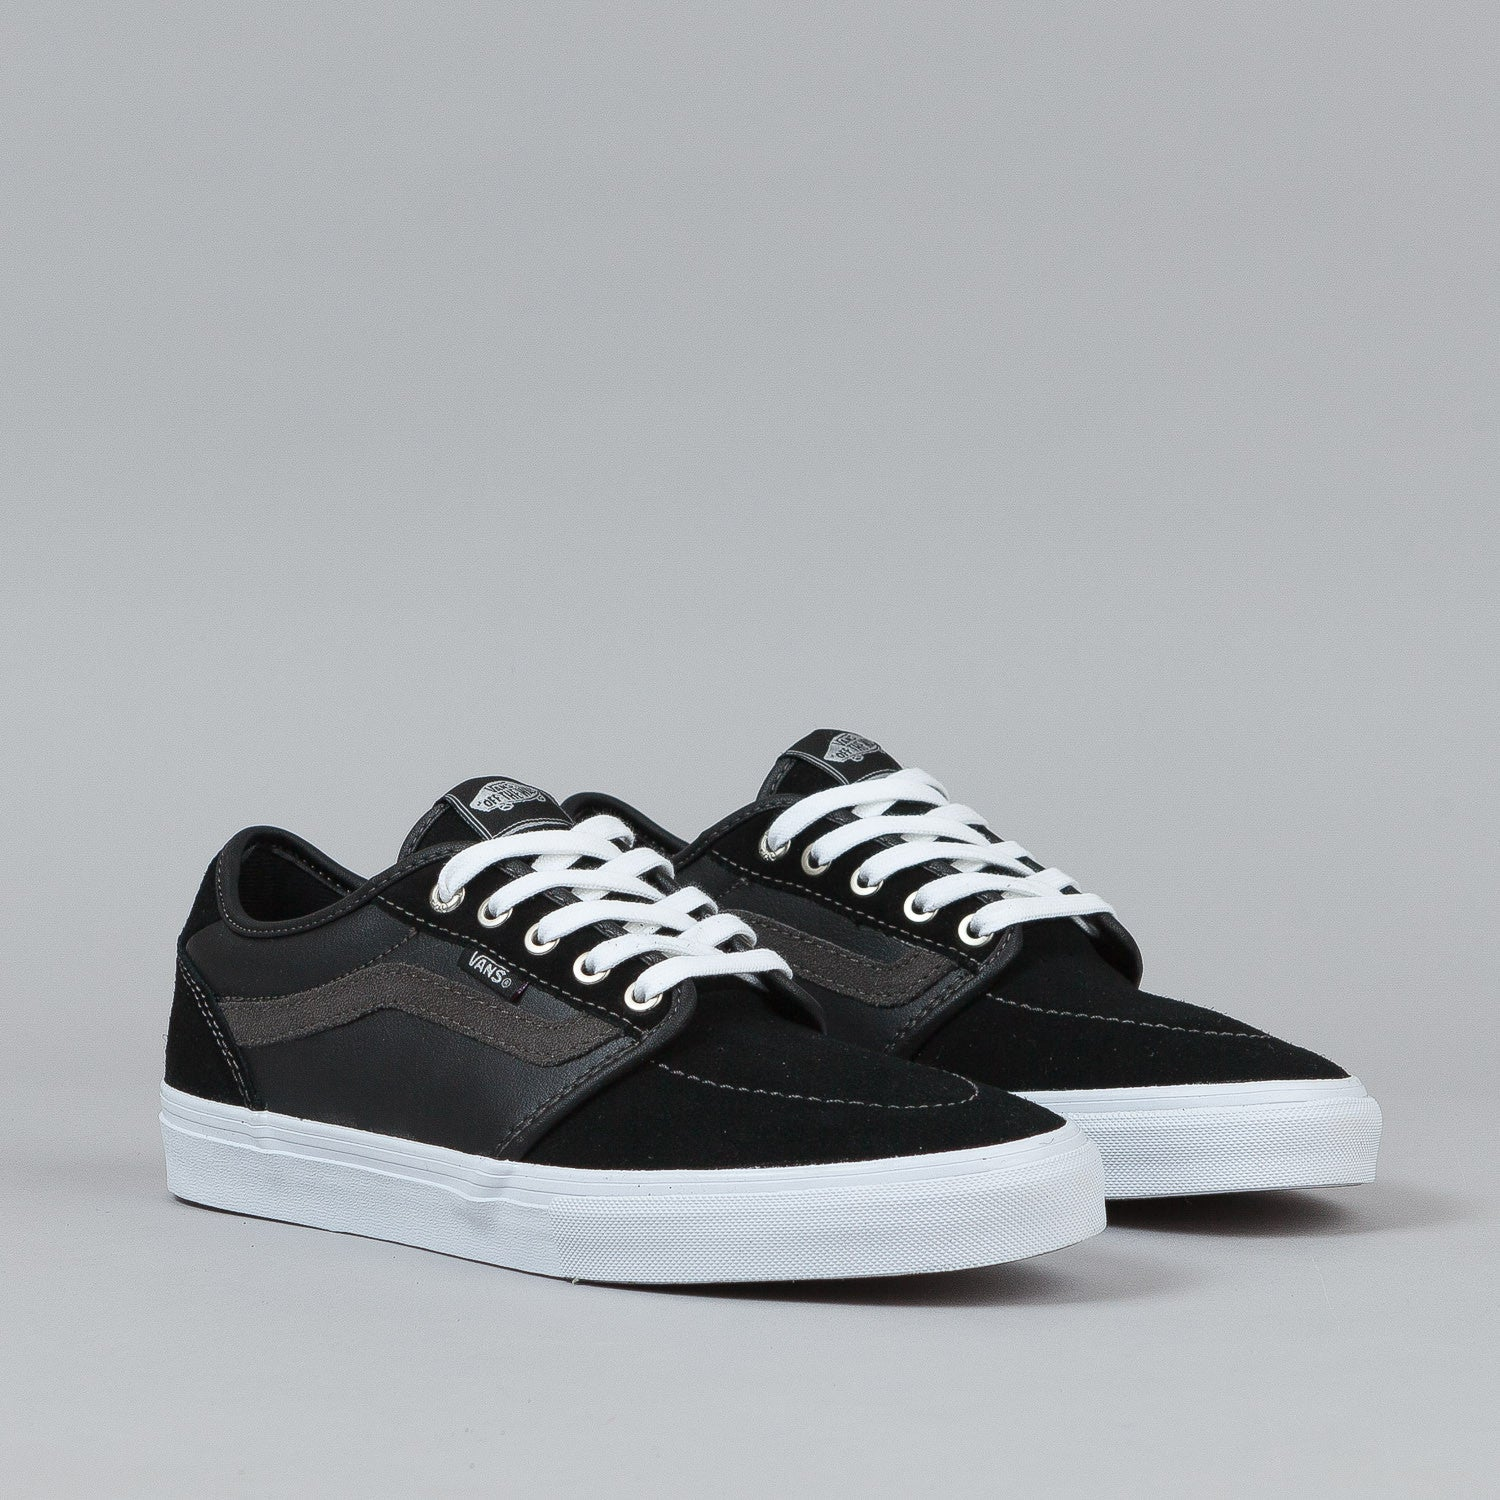 Vans Lindero 2 Shoes - Black / White / Silver